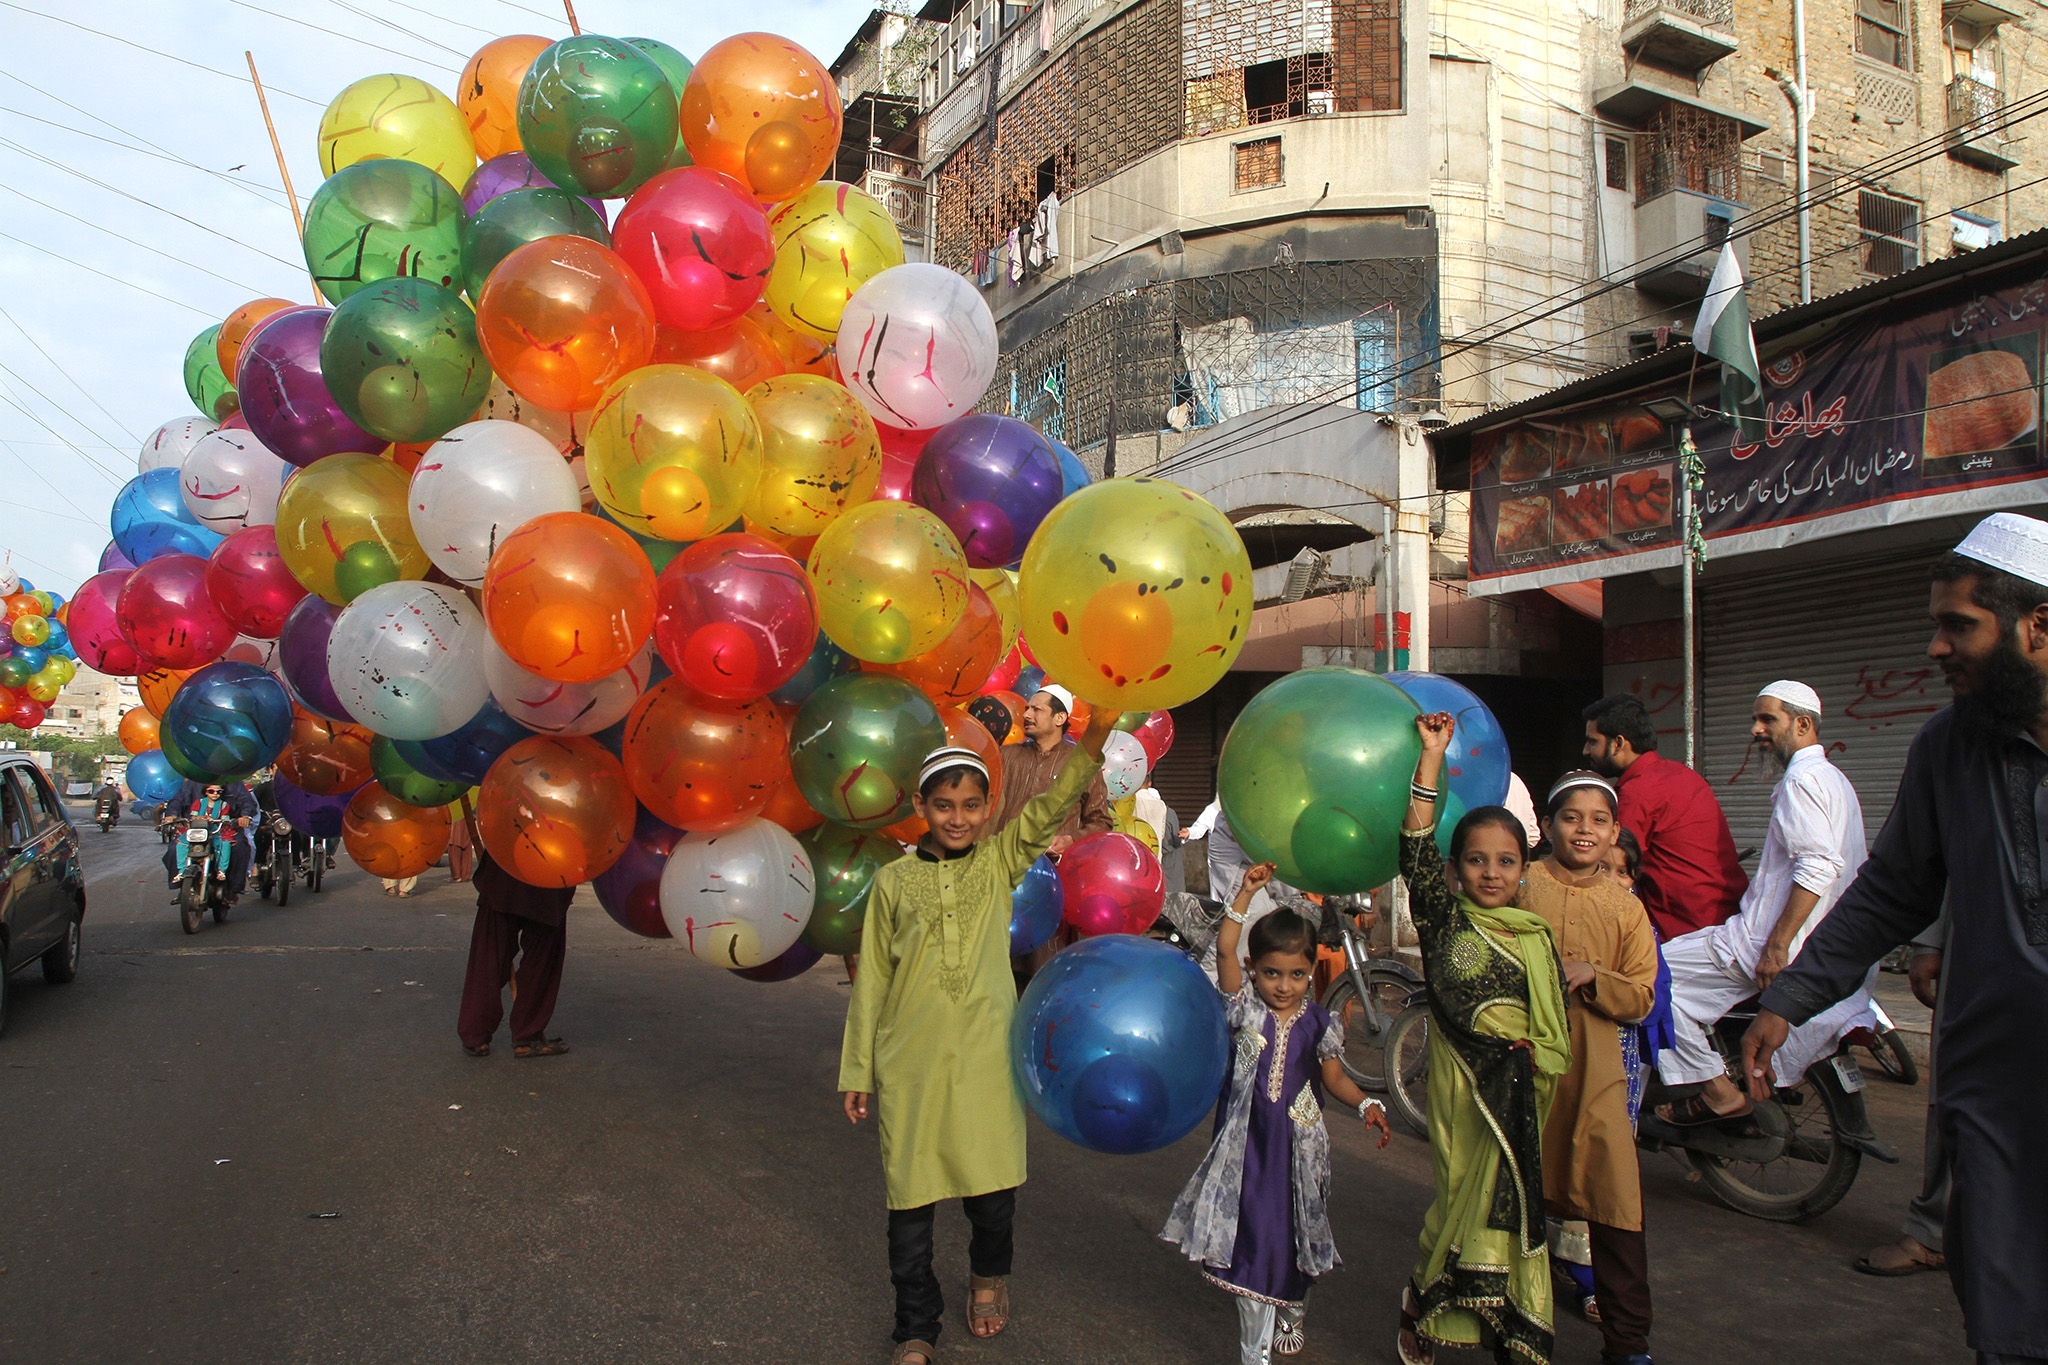 Pakistani children buy balloons to celebrate the Eid al Adha in Karachi, Pakistan, Tuesday, Sept. 13, 2016. Pakistani Muslims are celebrating the Eid al-Adha, or the Feast of the Sacrifice, on Tuesday to mark the willingness of the Prophet Ibrahim -- Abraham to Christians and Jews -- to sacrifice his son. During the holiday Muslims slaughter sheep and cattle, distribute part of the meat to the poor and eat the rest. (AP Photo/Fareed Khan)